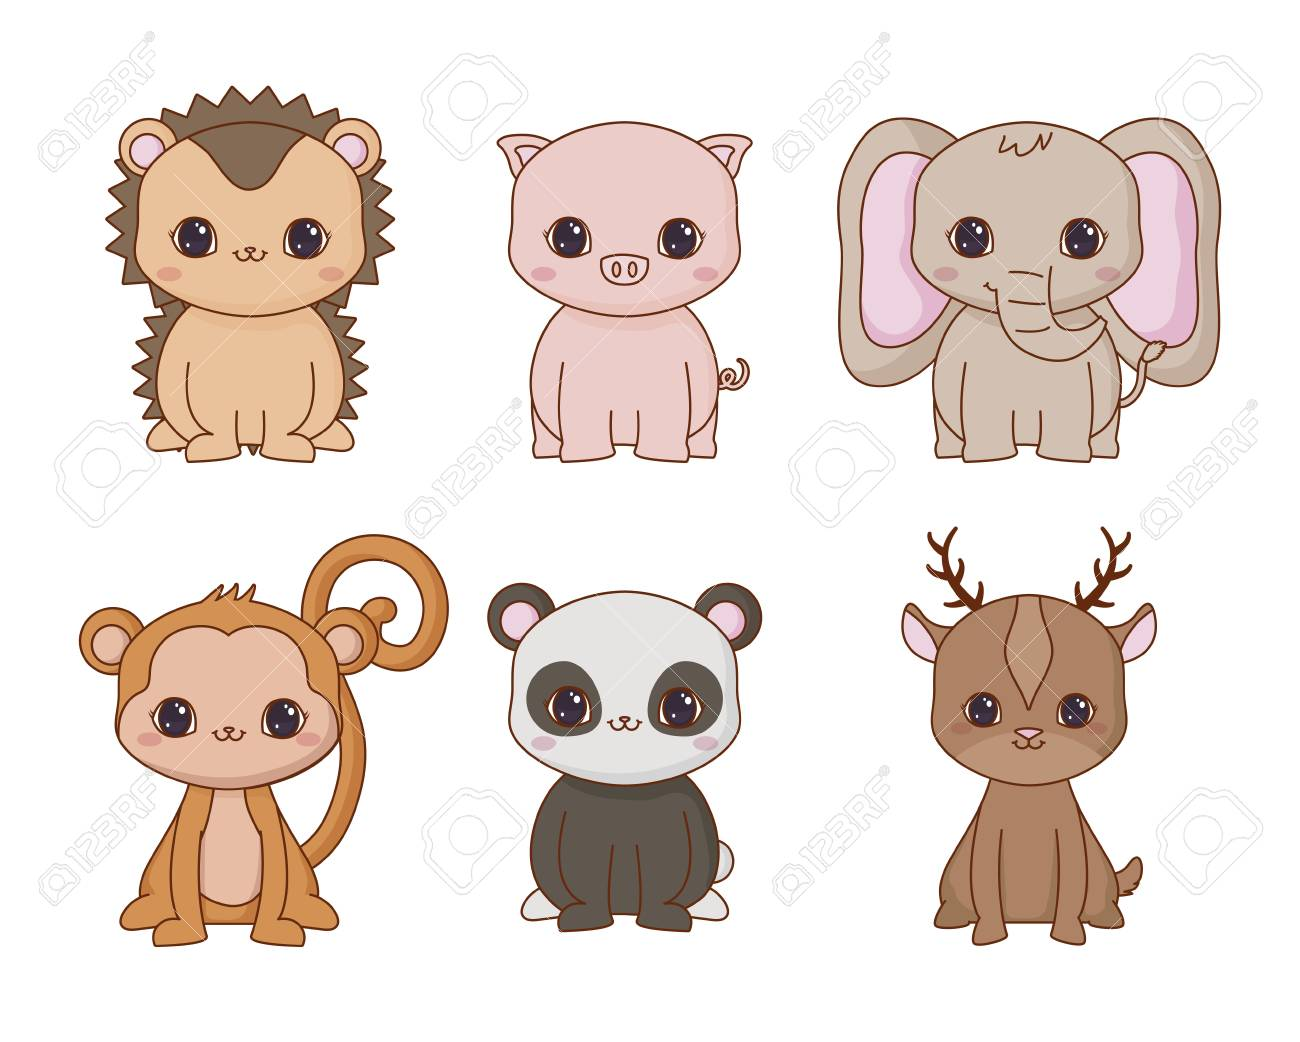 Image of: Png Icon Set Of Kawaii Animals Over White Background Colorful Design Vector Illustration Stock Vector 123rfcom Icon Set Of Kawaii Animals Over White Background Colorful Design